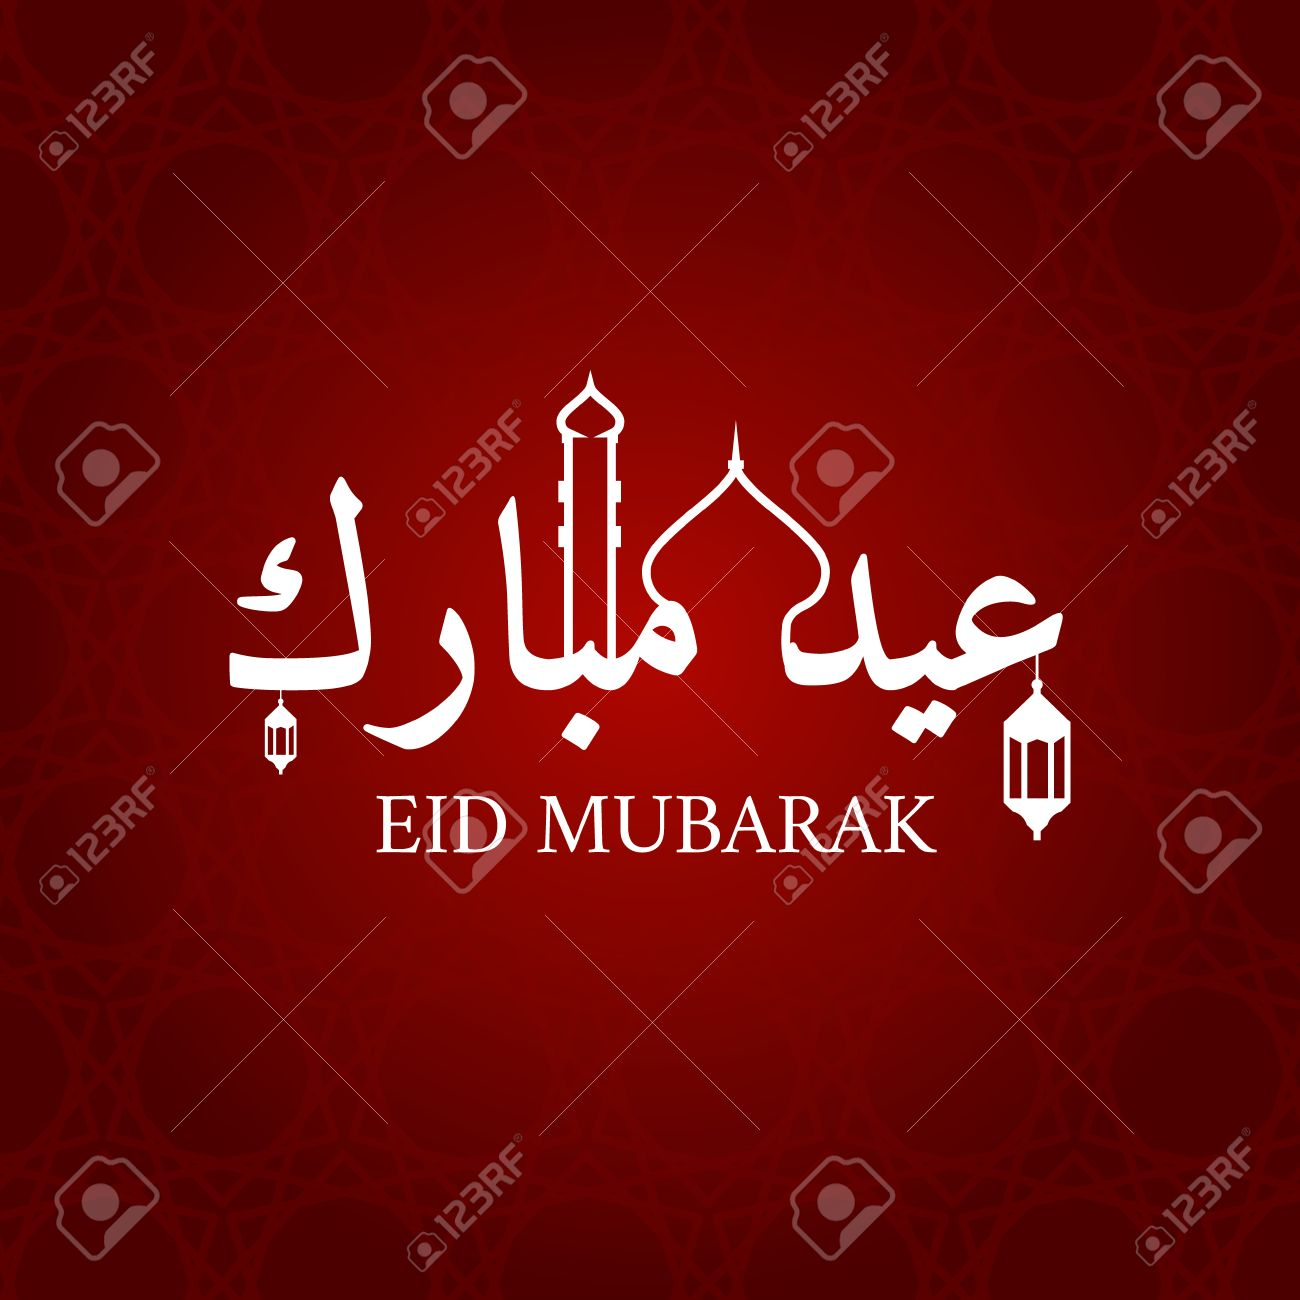 Eid mubarak greeting card vector design ramadan islam arabic eid mubarak greeting card vector design ramadan islam arabic holiday muslim culture eid mubarak m4hsunfo